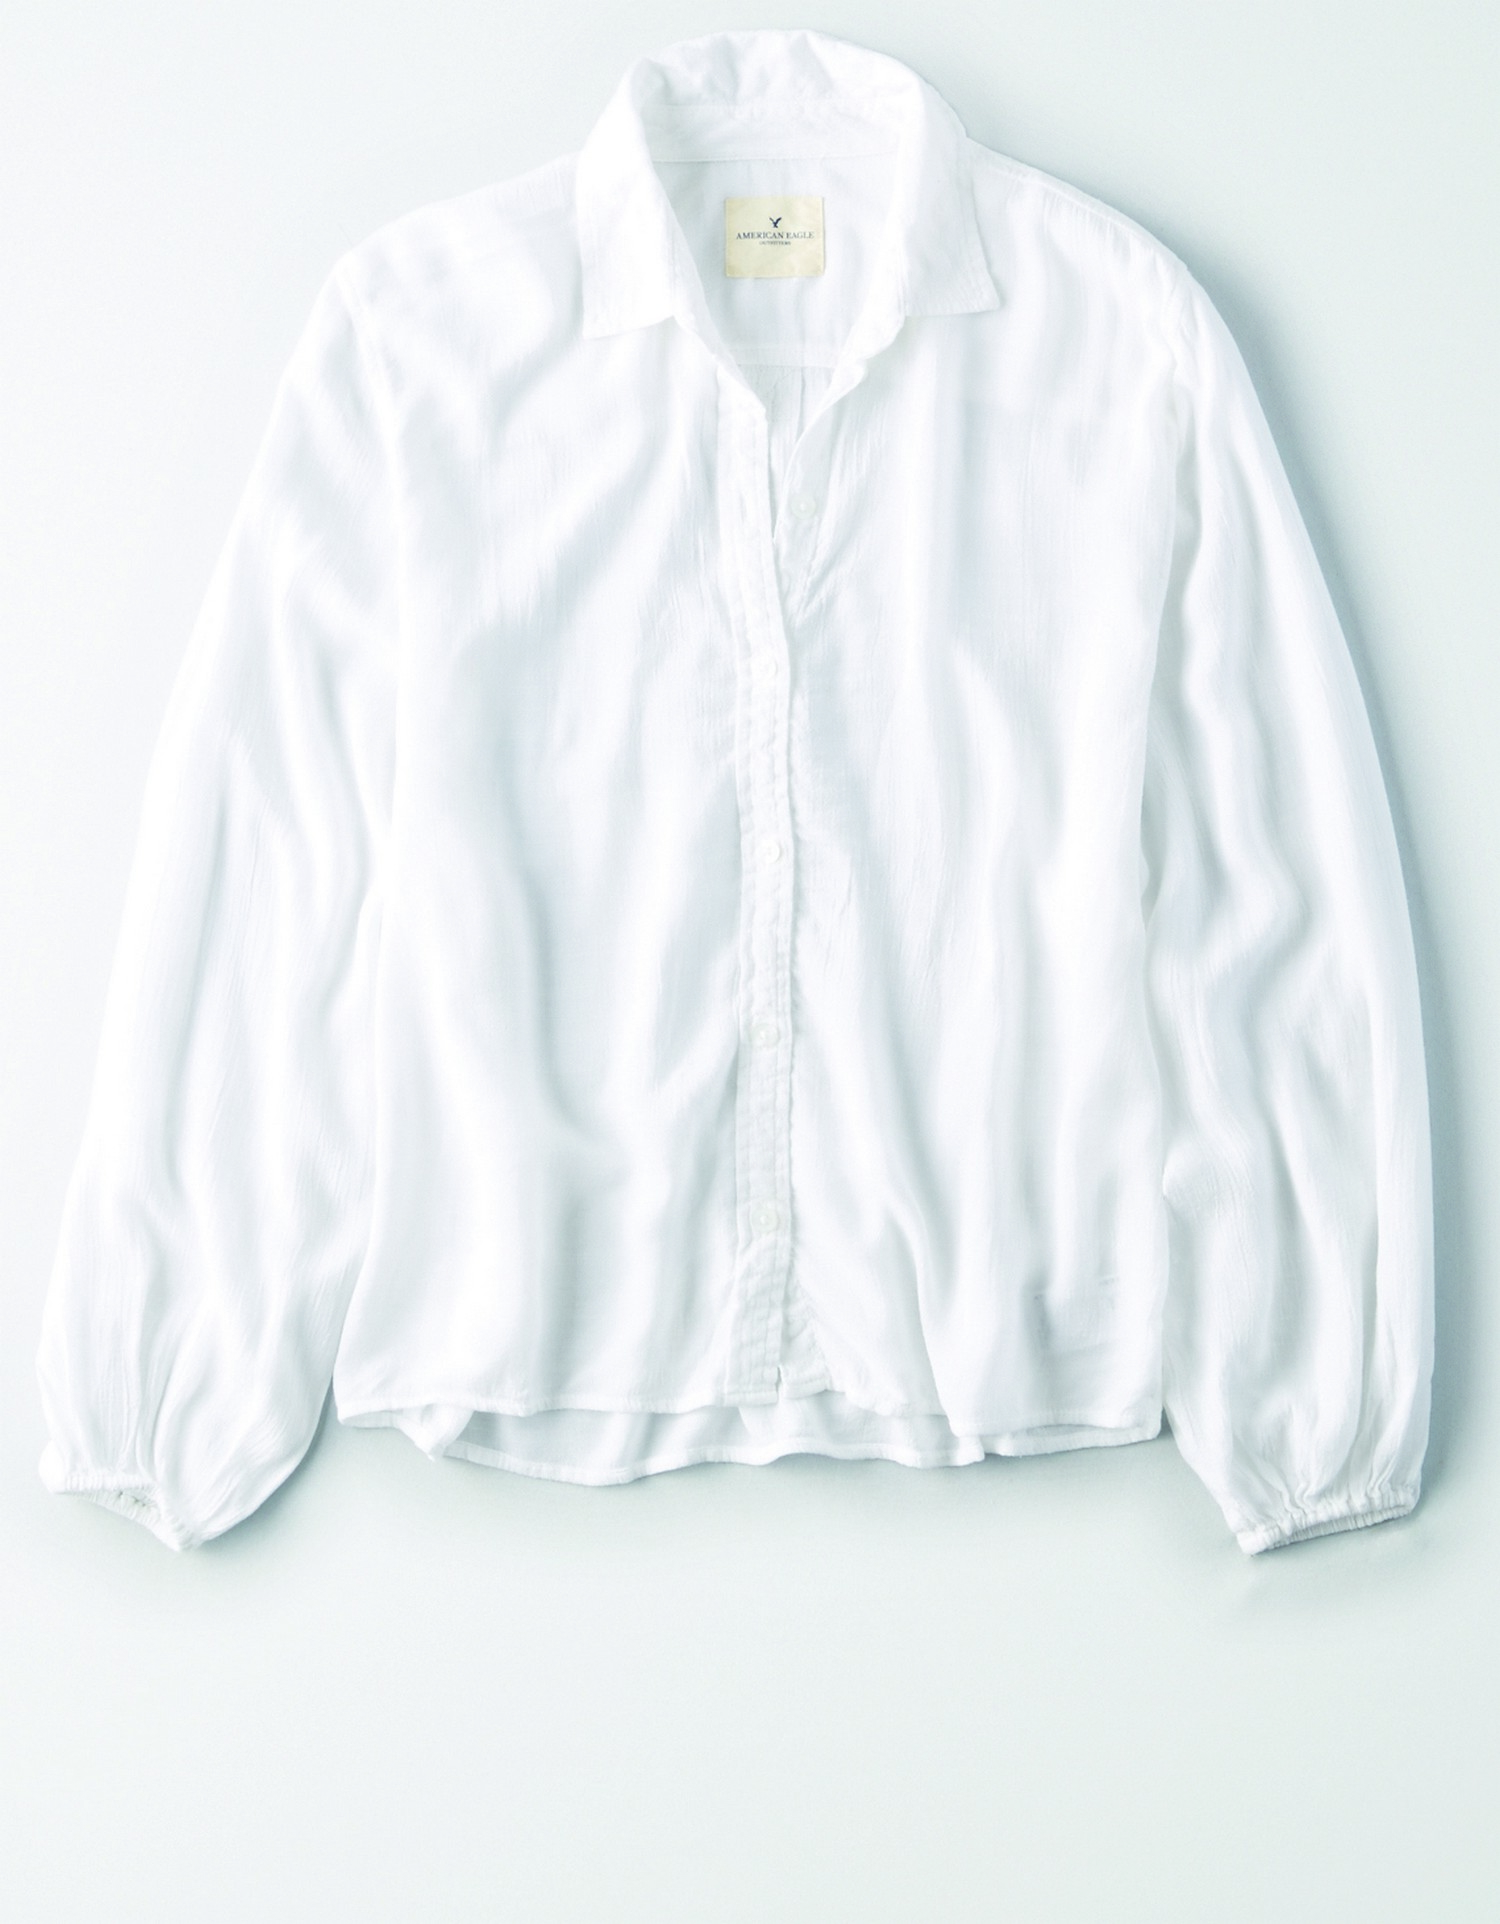 AE - W - Apparel - BUTTONDOWN - White - Solid Color - elastic cuff - slouchy loose button down BG *Tracked